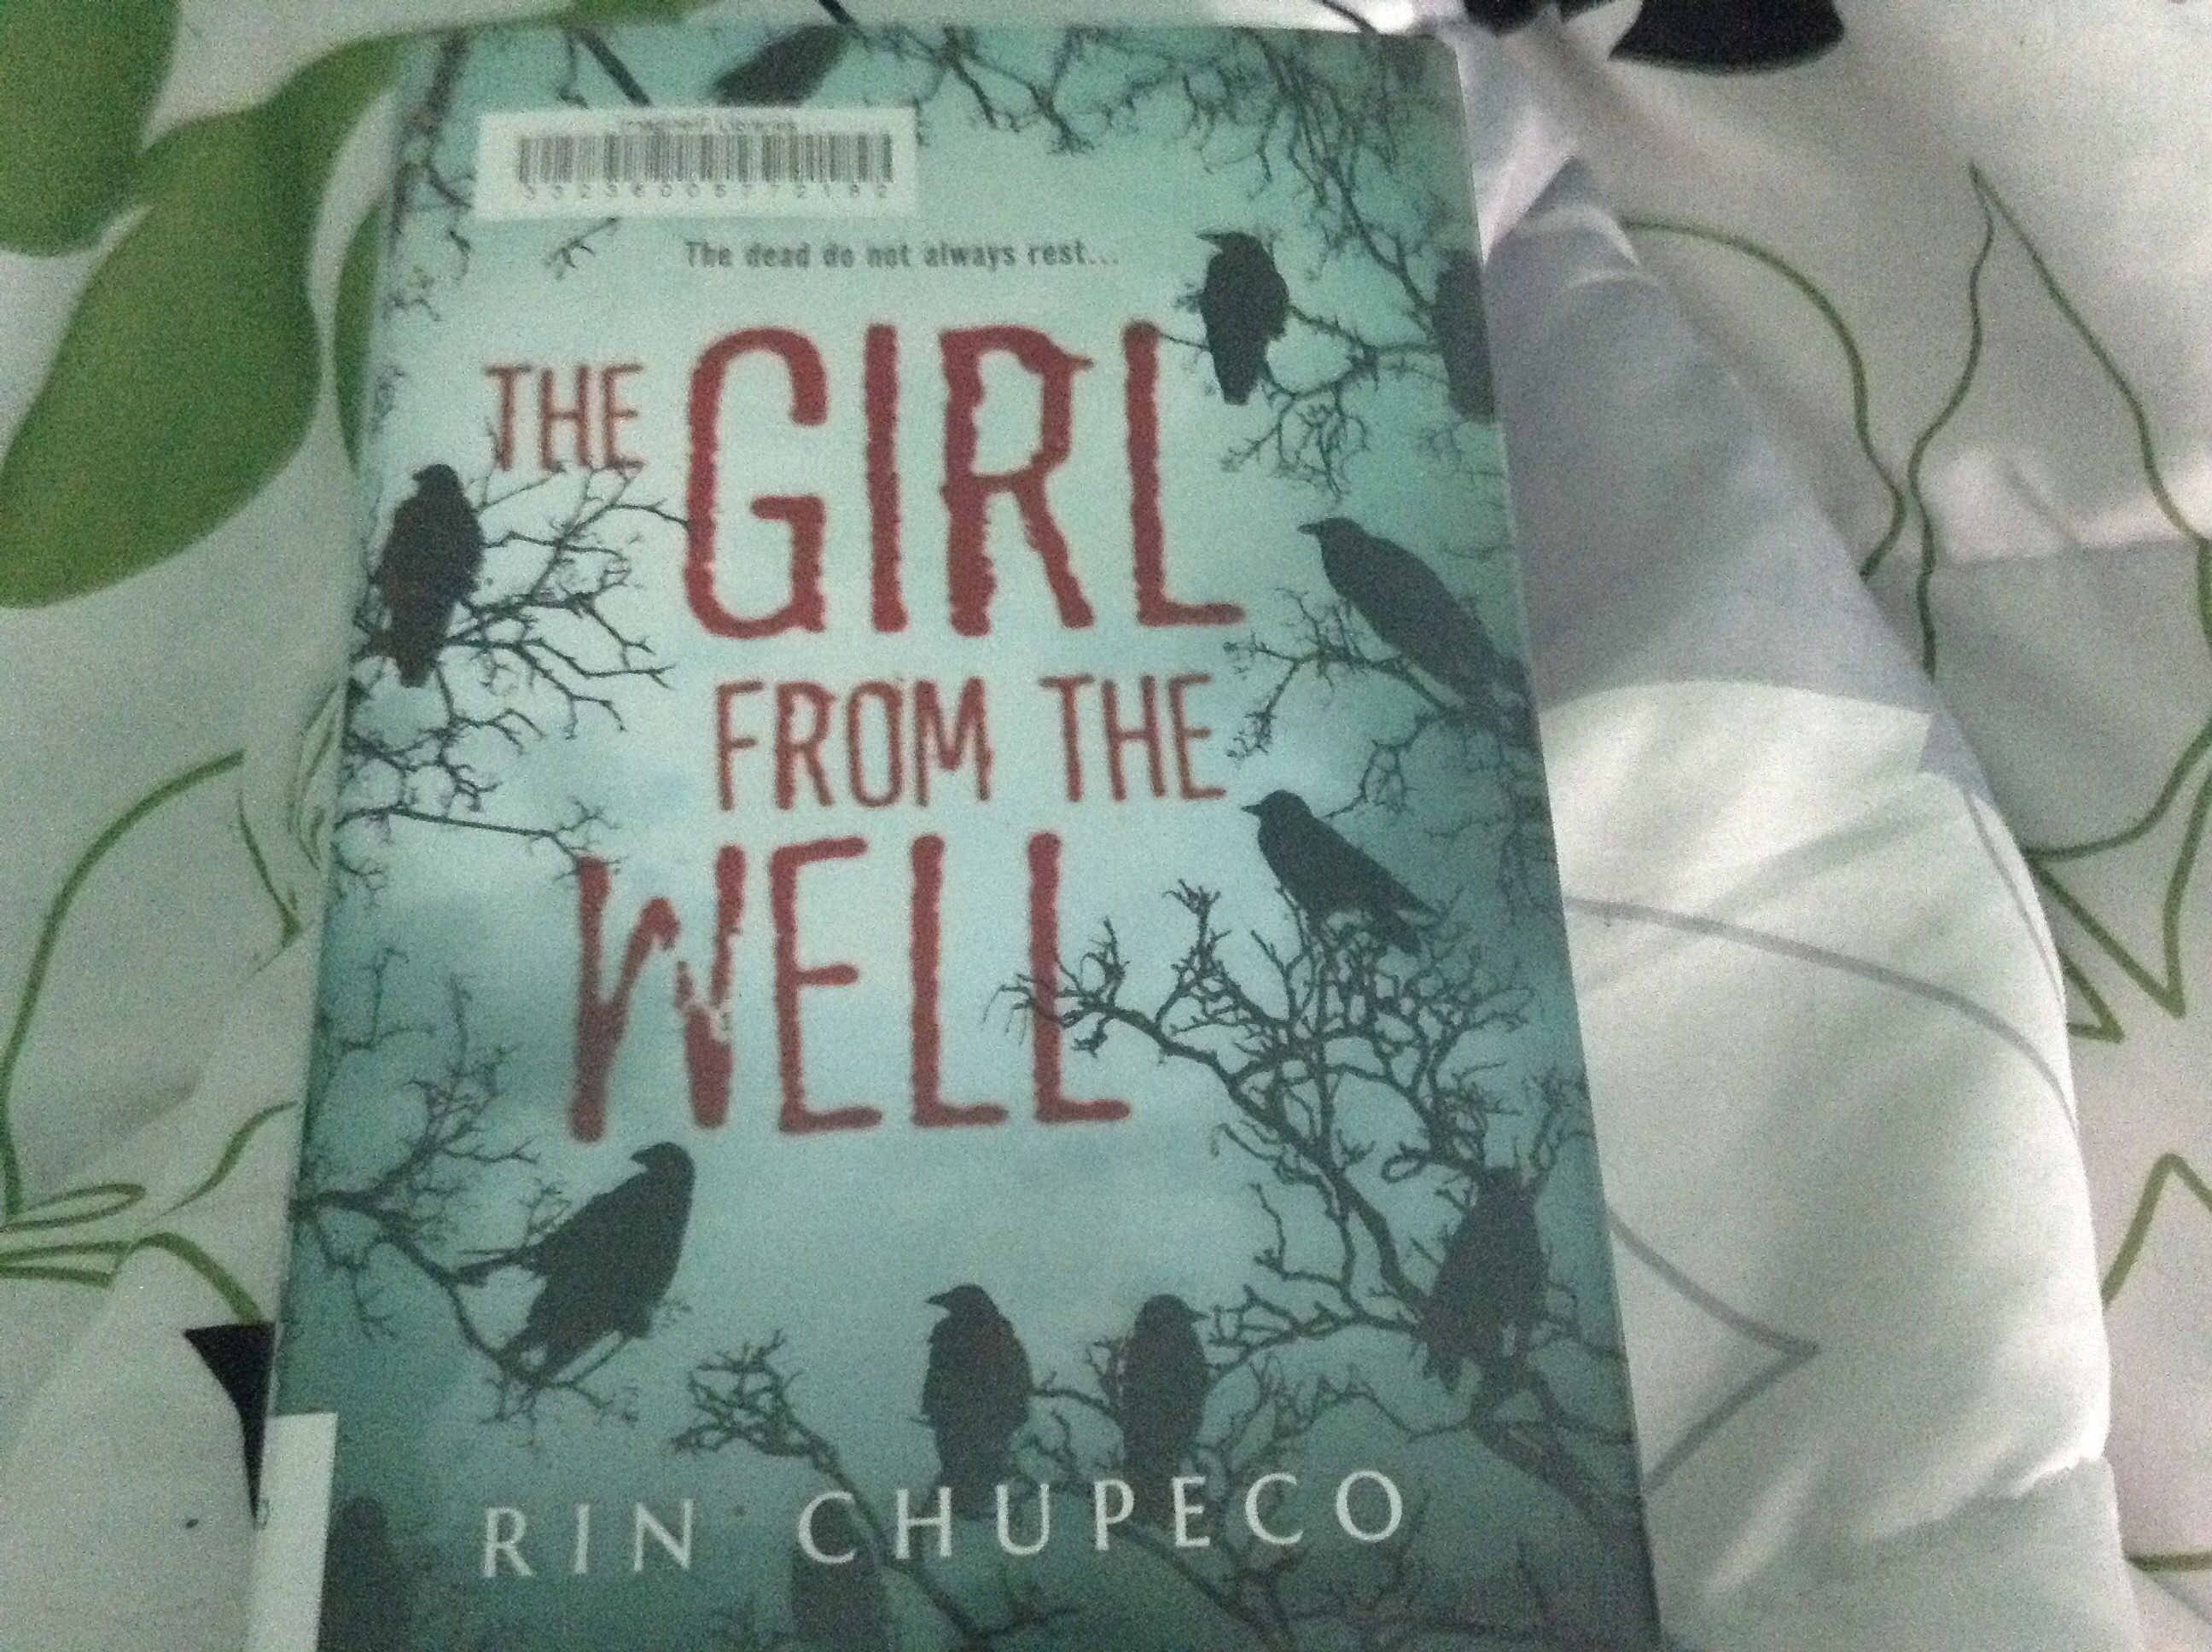 A book I got from the library: The Girl From The Well